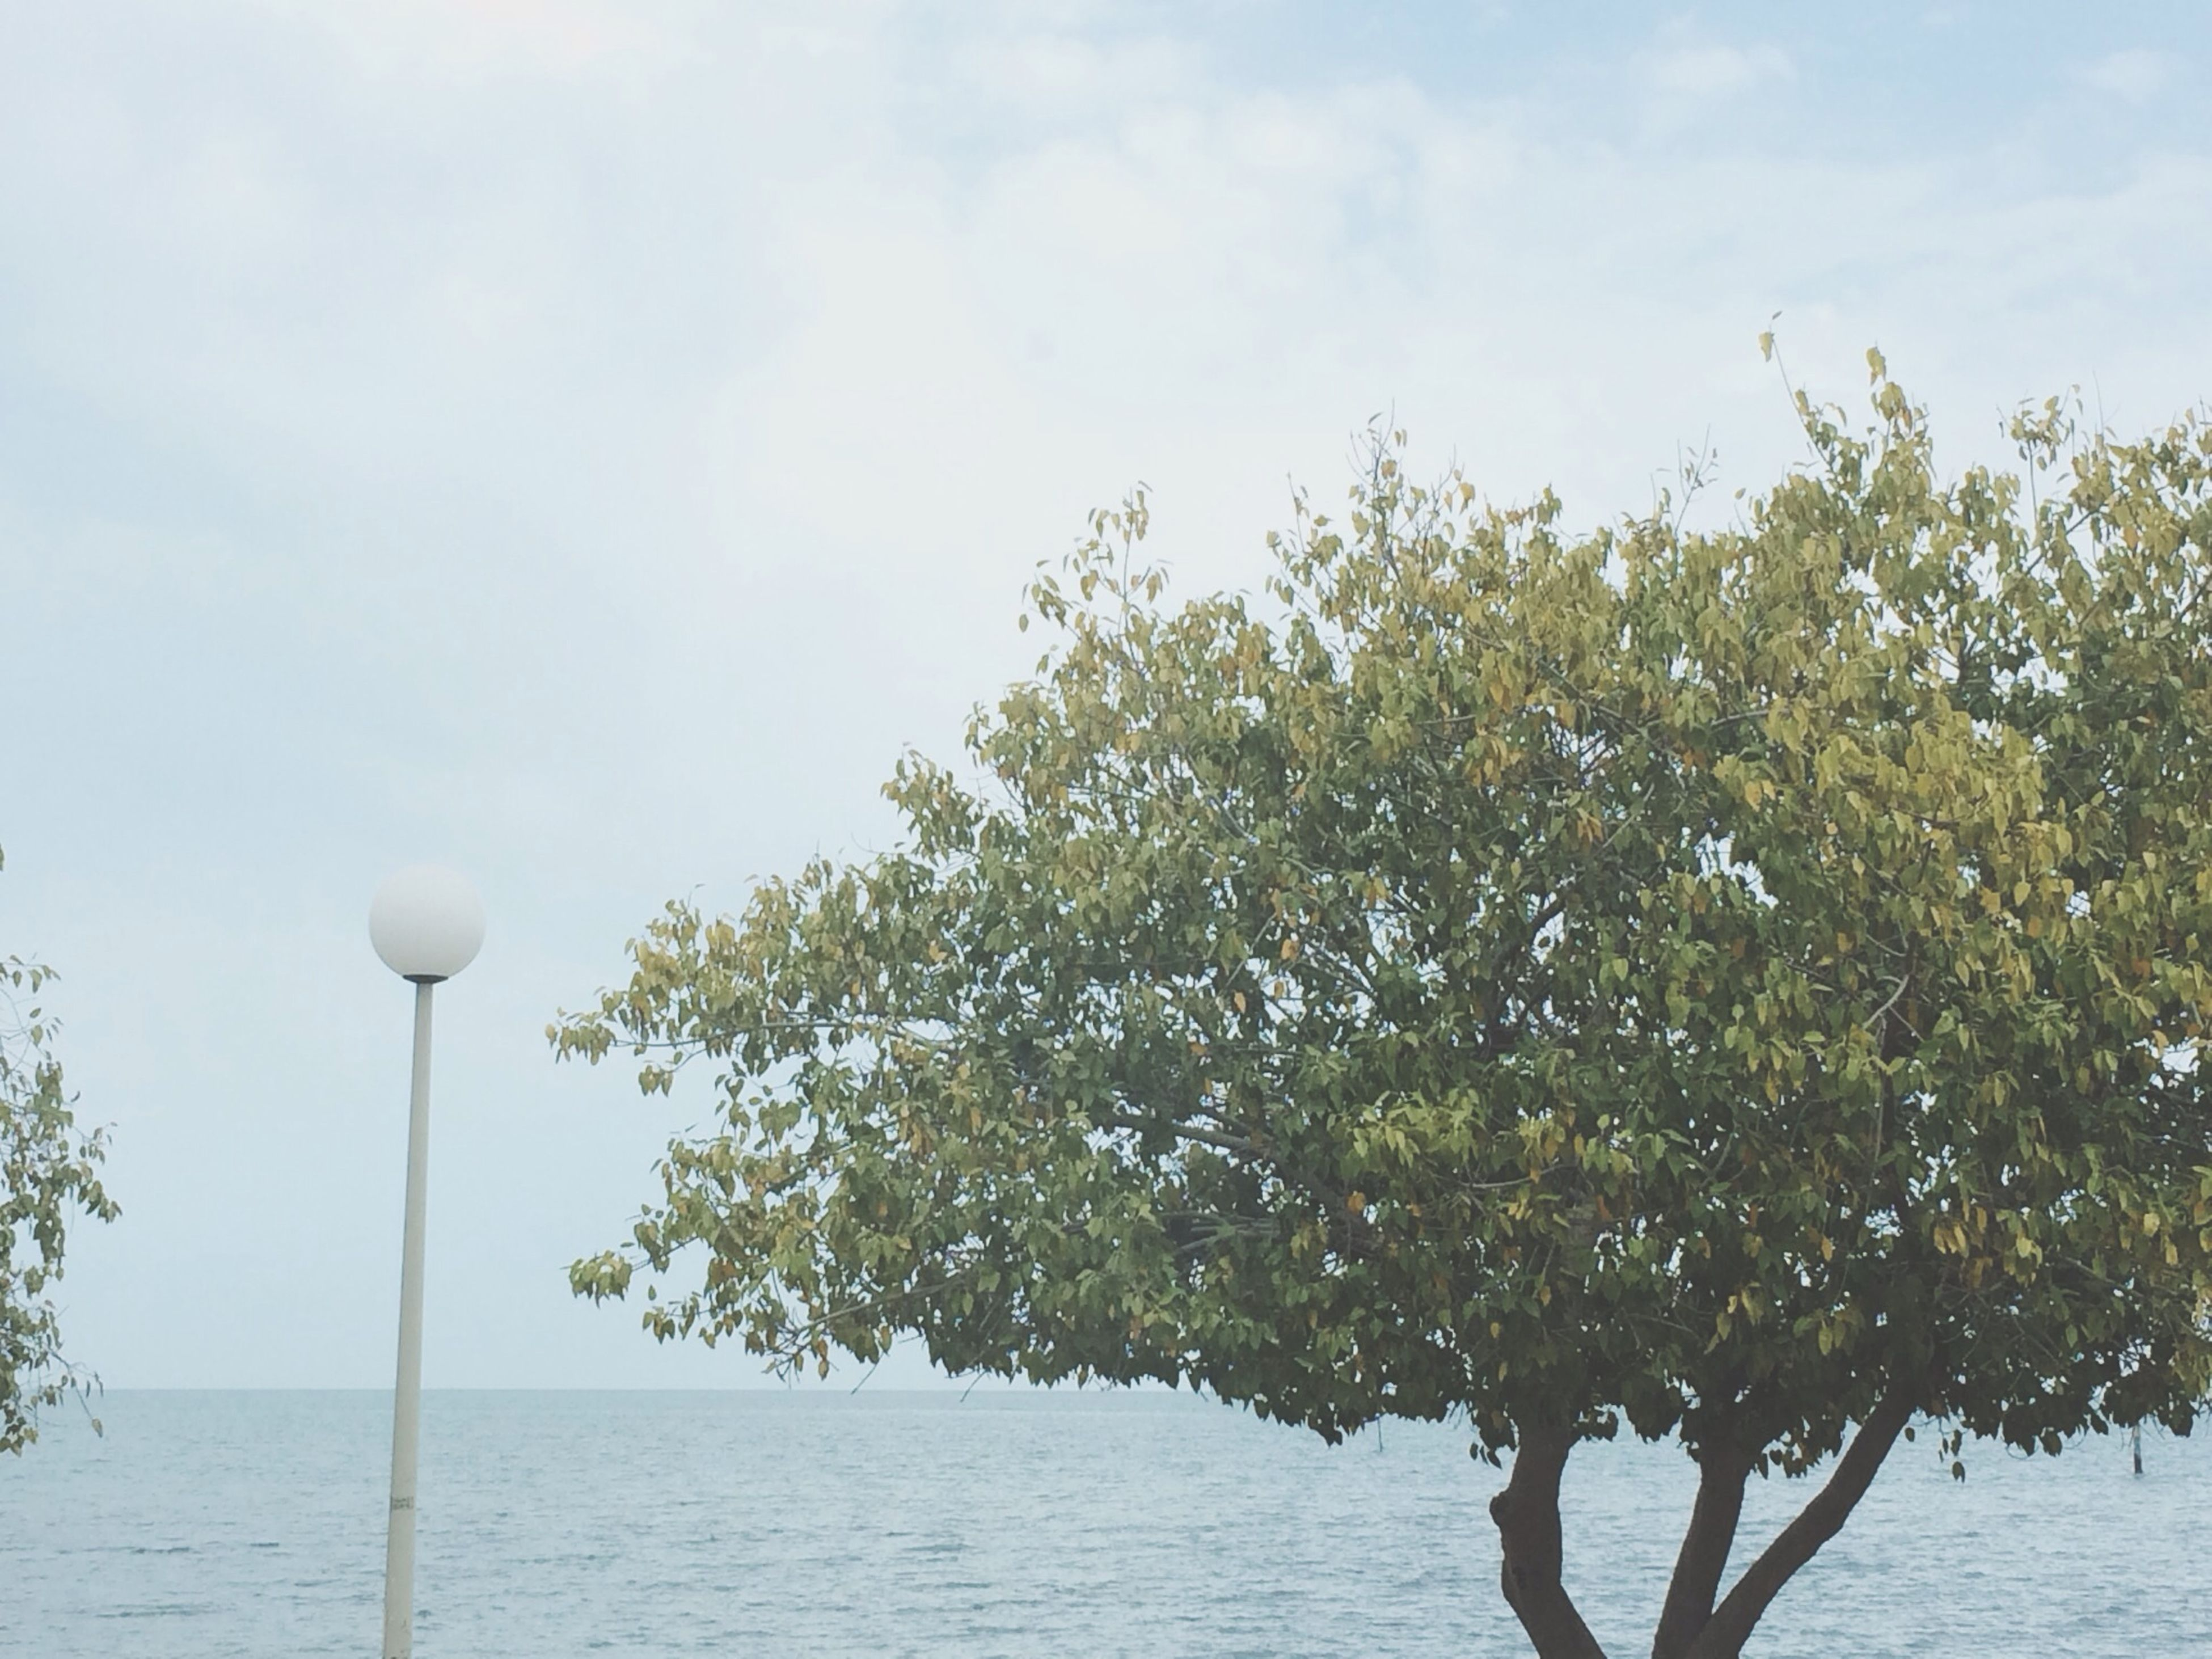 tree, sky, tranquility, nature, street light, beauty in nature, tranquil scene, growth, water, low angle view, scenics, branch, day, cloud - sky, outdoors, cloud, no people, idyllic, lighting equipment, sea